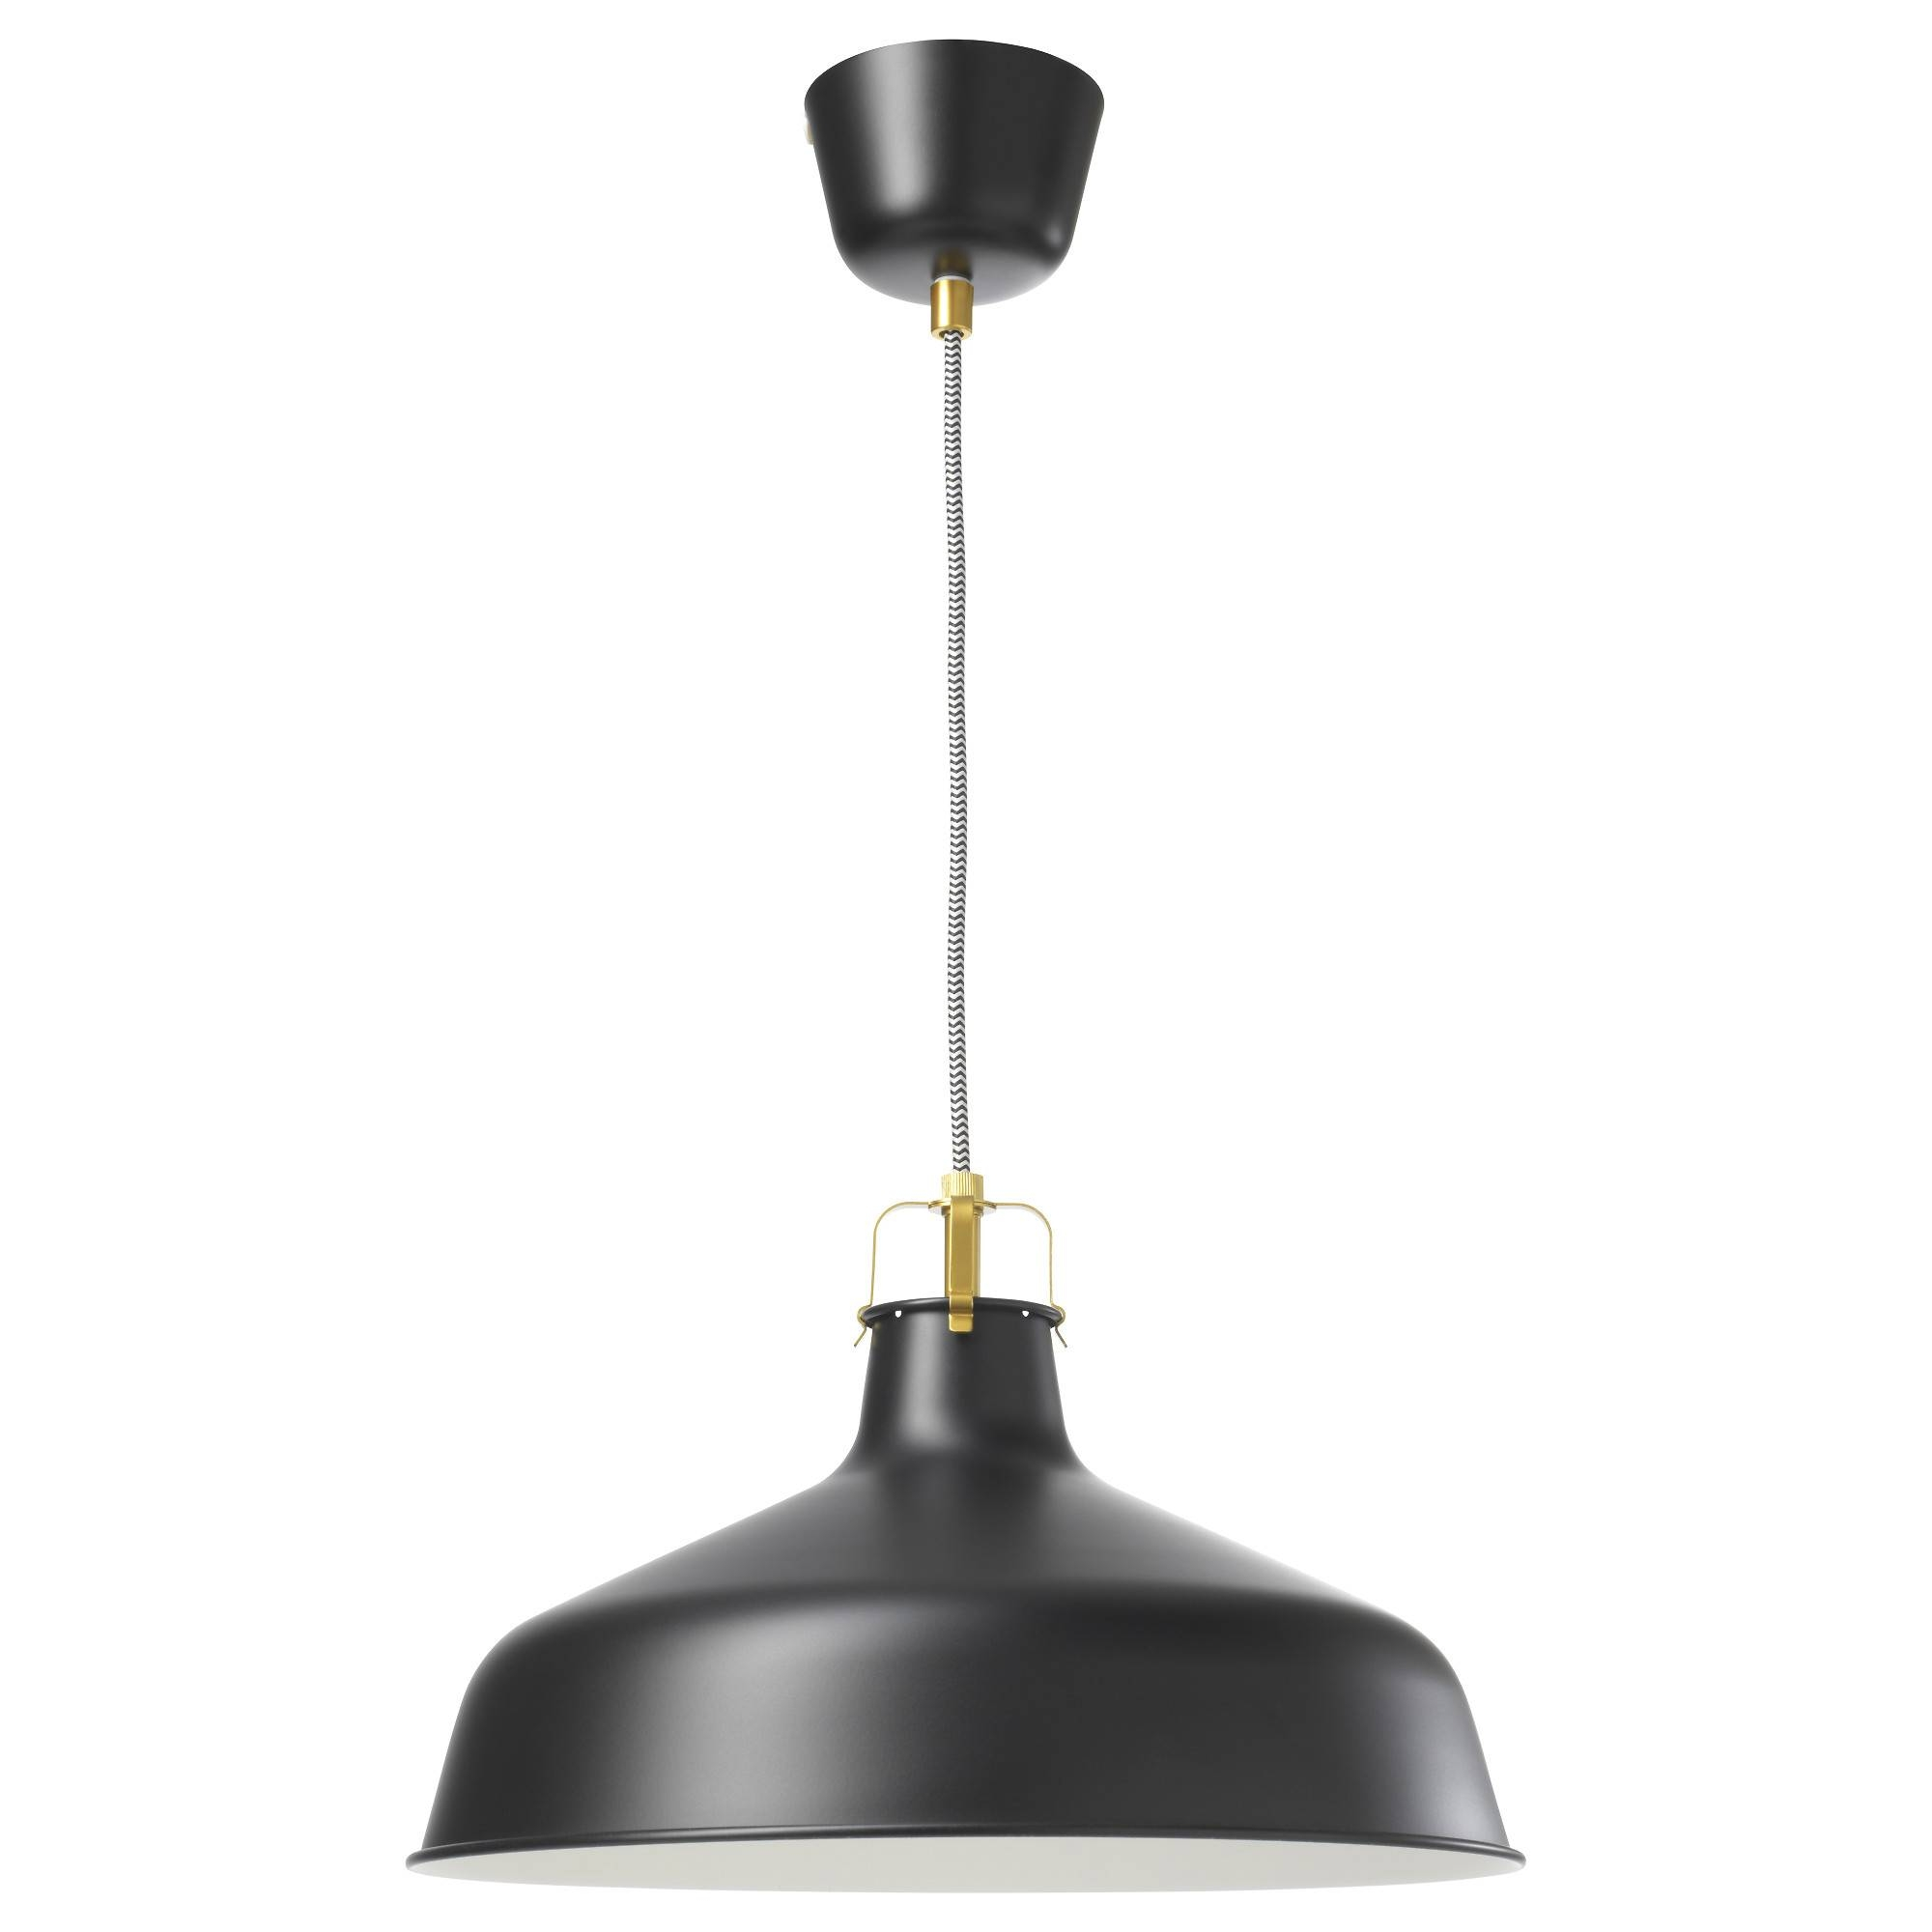 Ceiling Lights – Pendants, Spotlights & More - Ikea with Ikea Plug In Pendant Lights (Image 7 of 15)